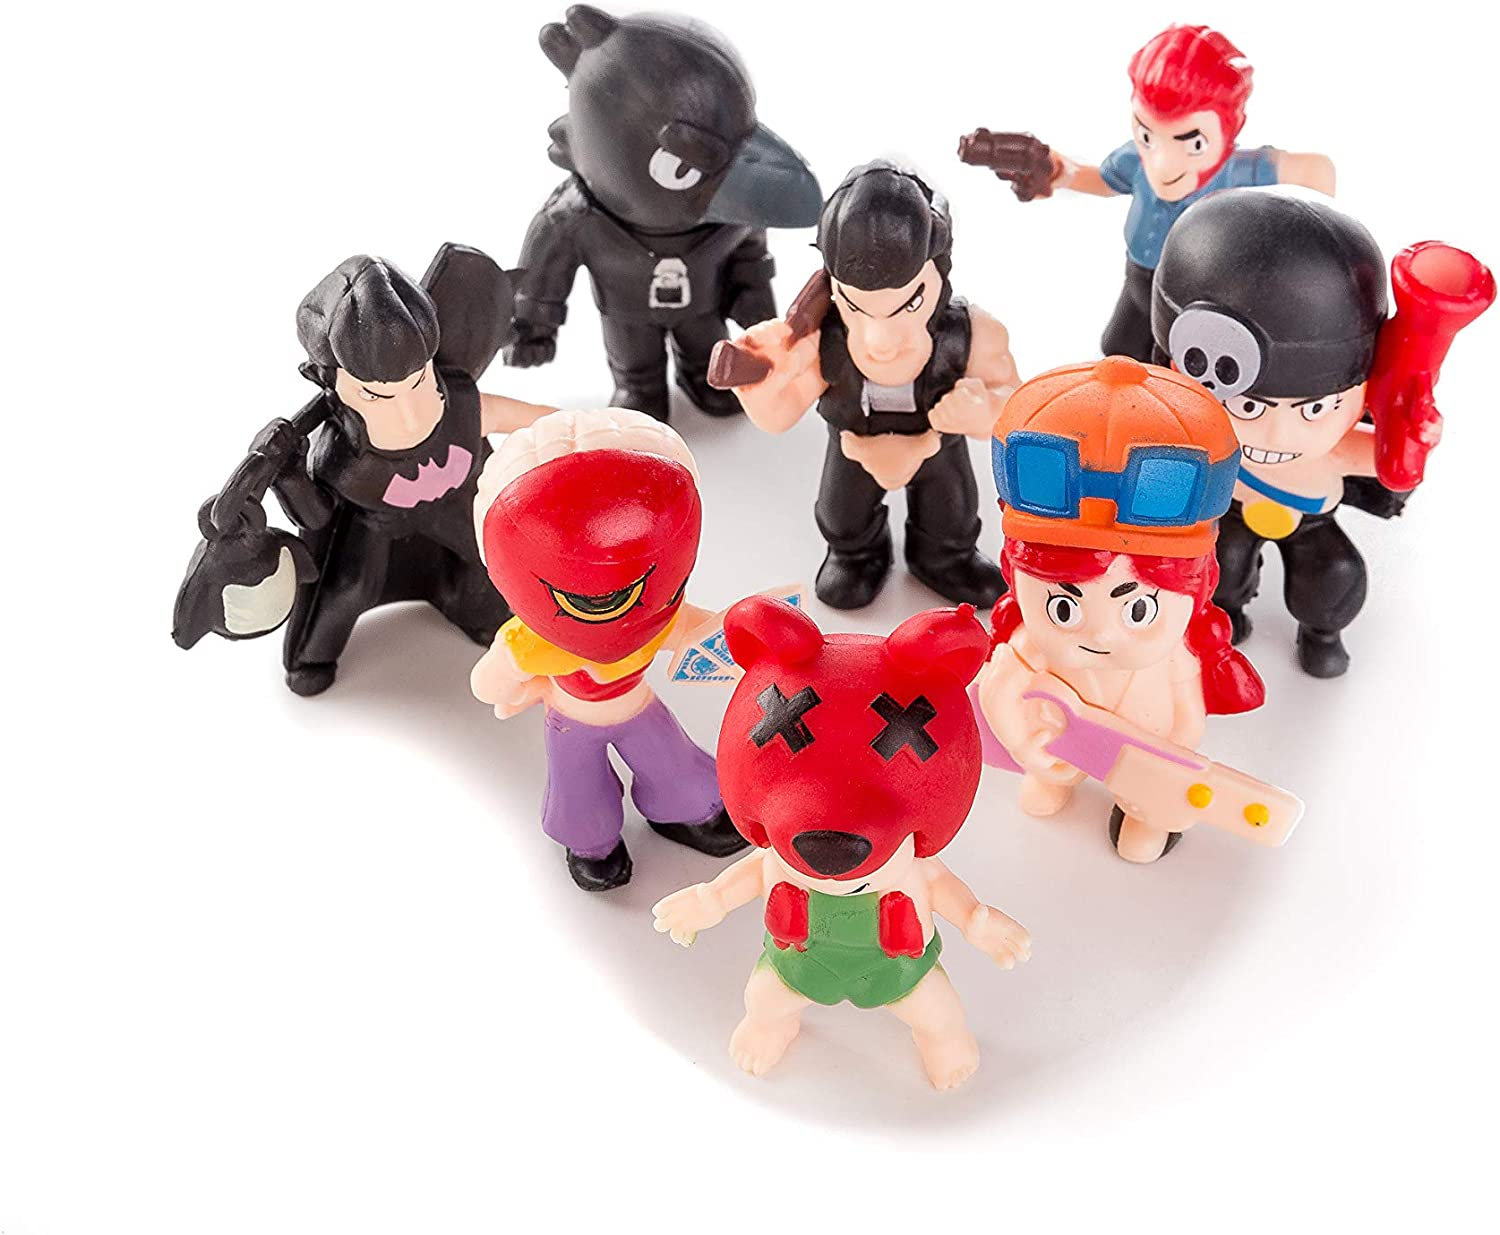 8 pcs brawl stars Characters Toys Mini Figure Collection Playset Cake Topper child playset toys Decoration